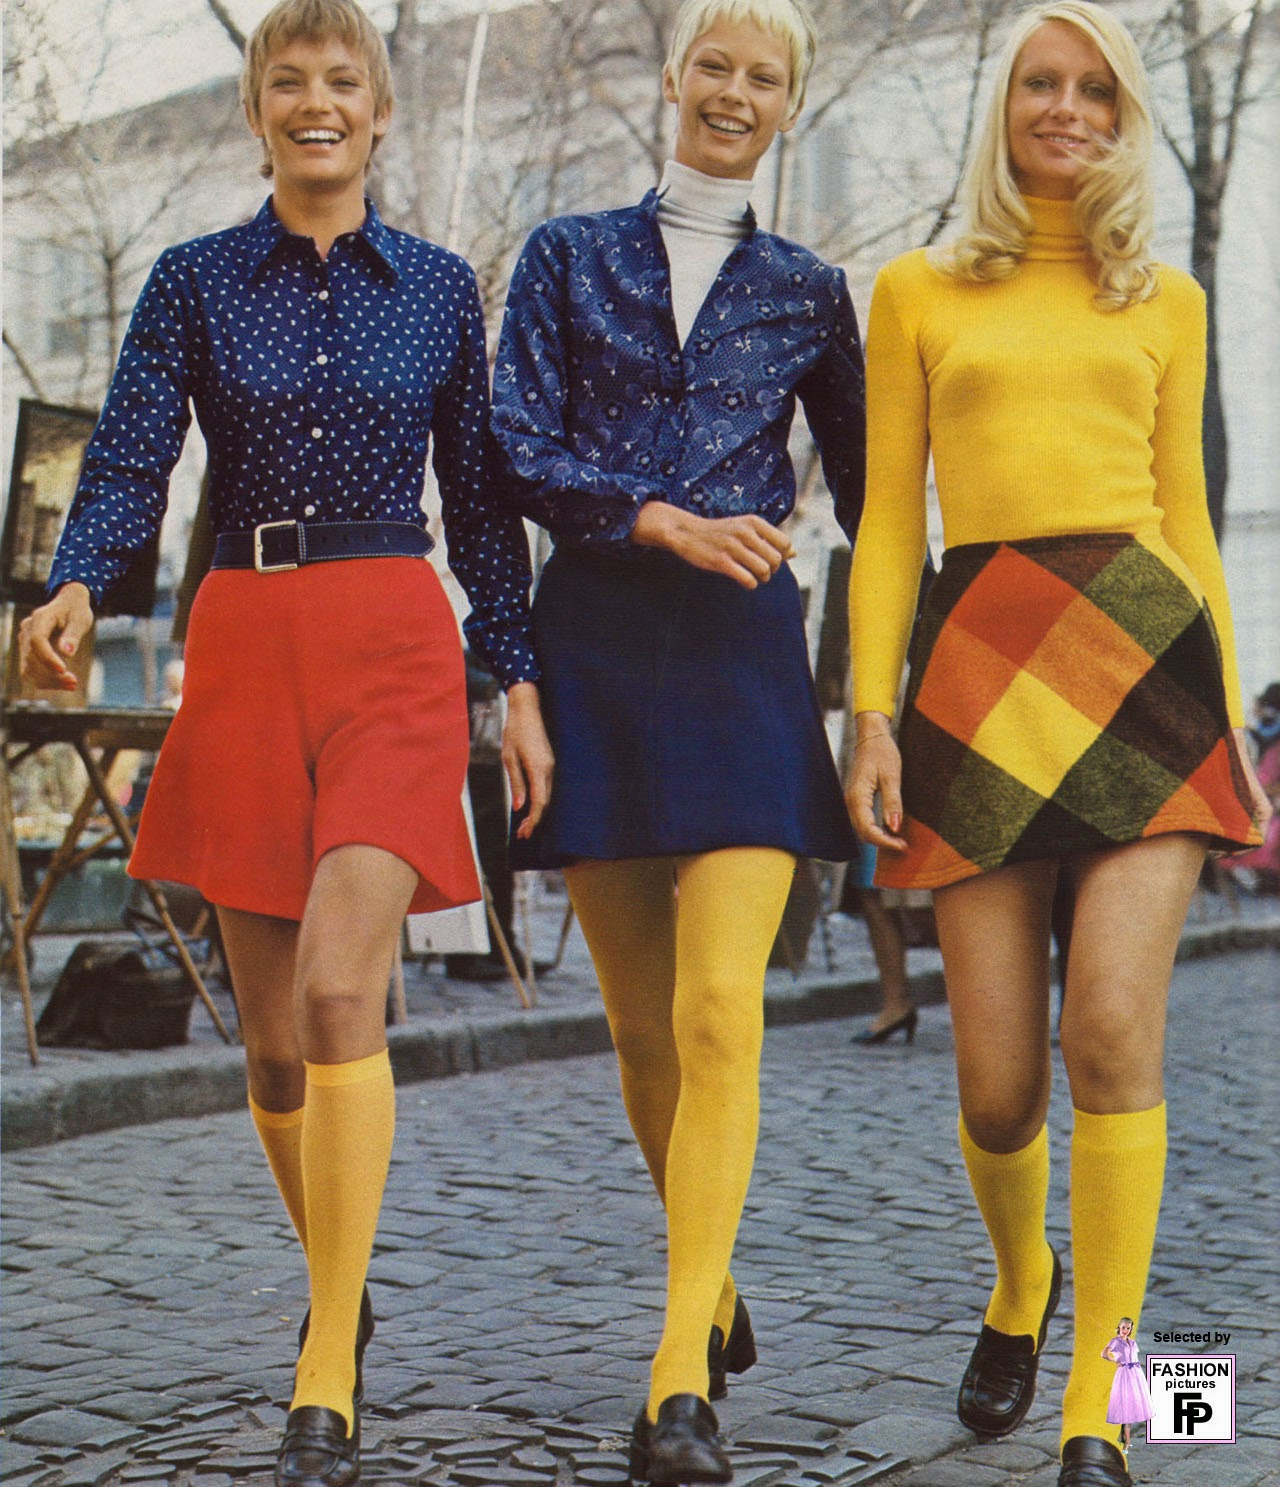 Fashion Women Fashion: 50 Awesome And Colorful Photoshoots Of The 1970s Fashion